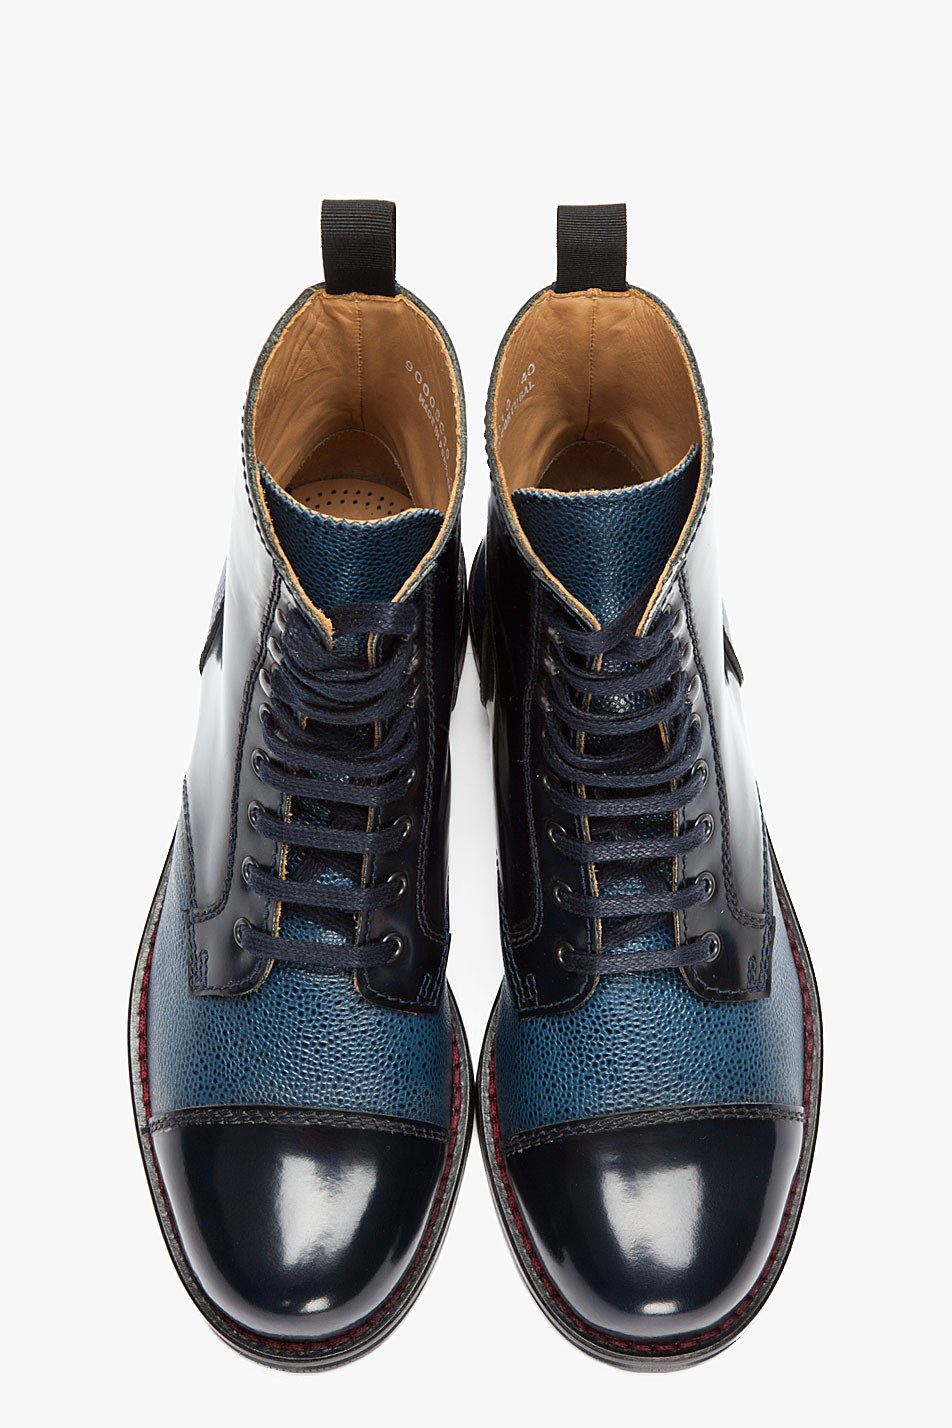 Carven Blue Pebbled Leather Chaus Montante Boots in Blue for Men ...